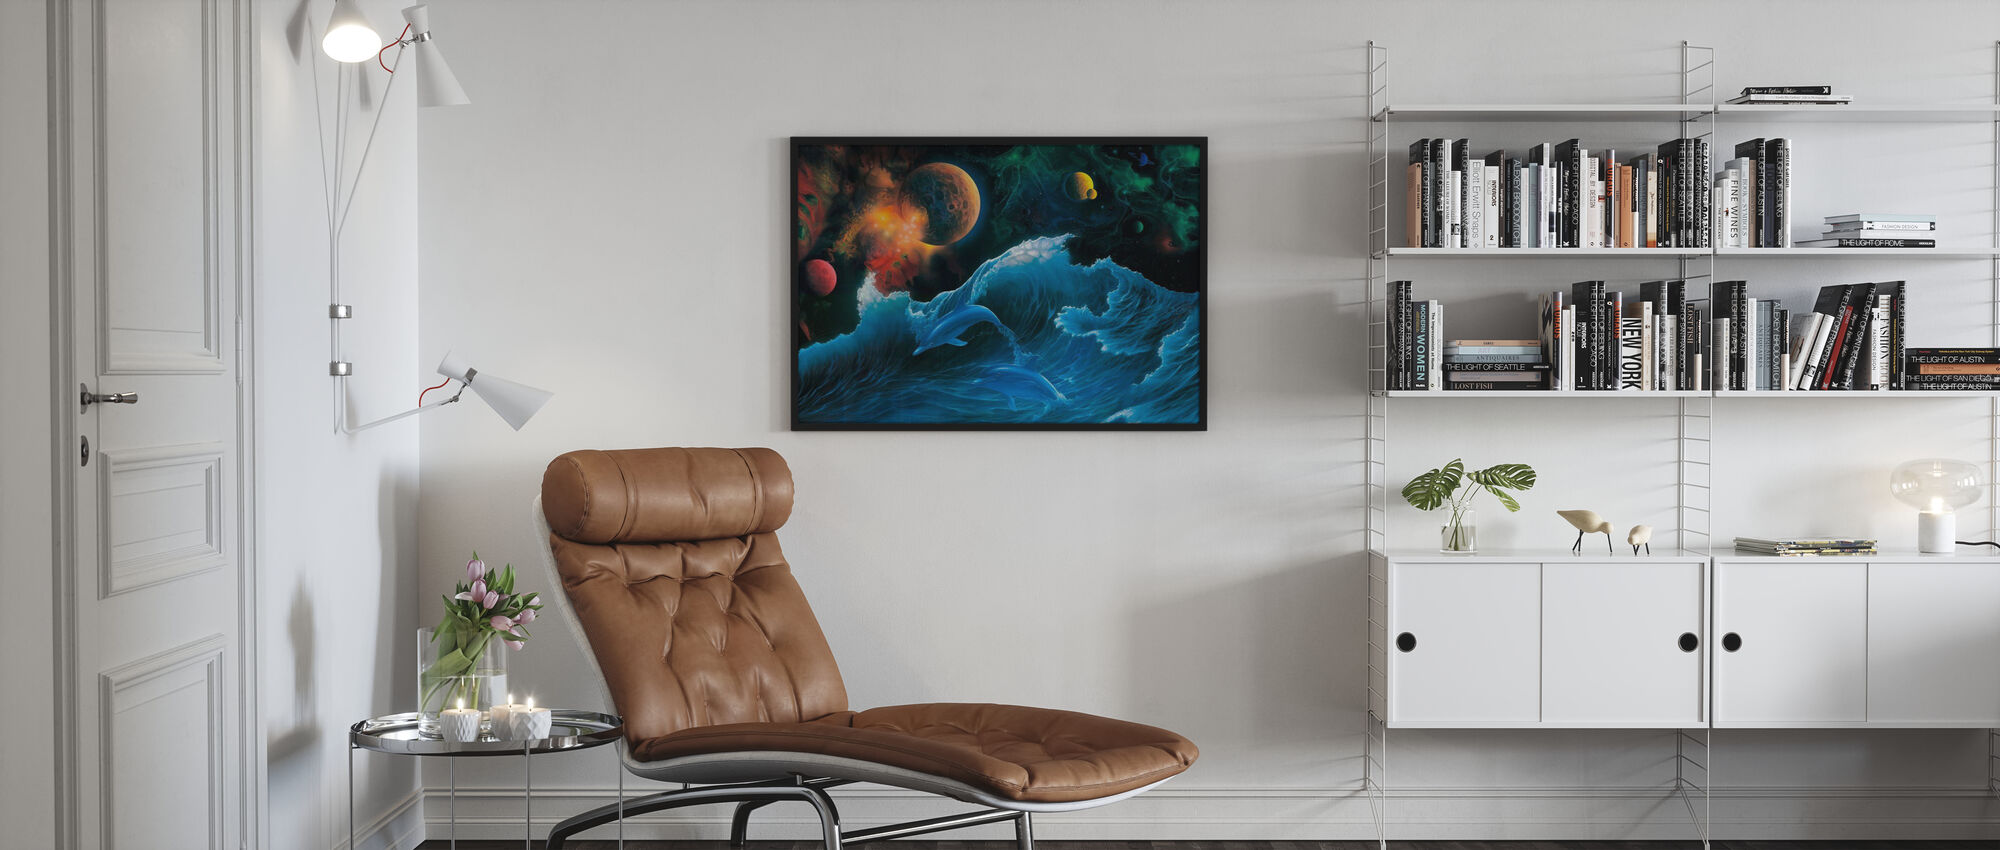 Voyager - Poster - Living Room